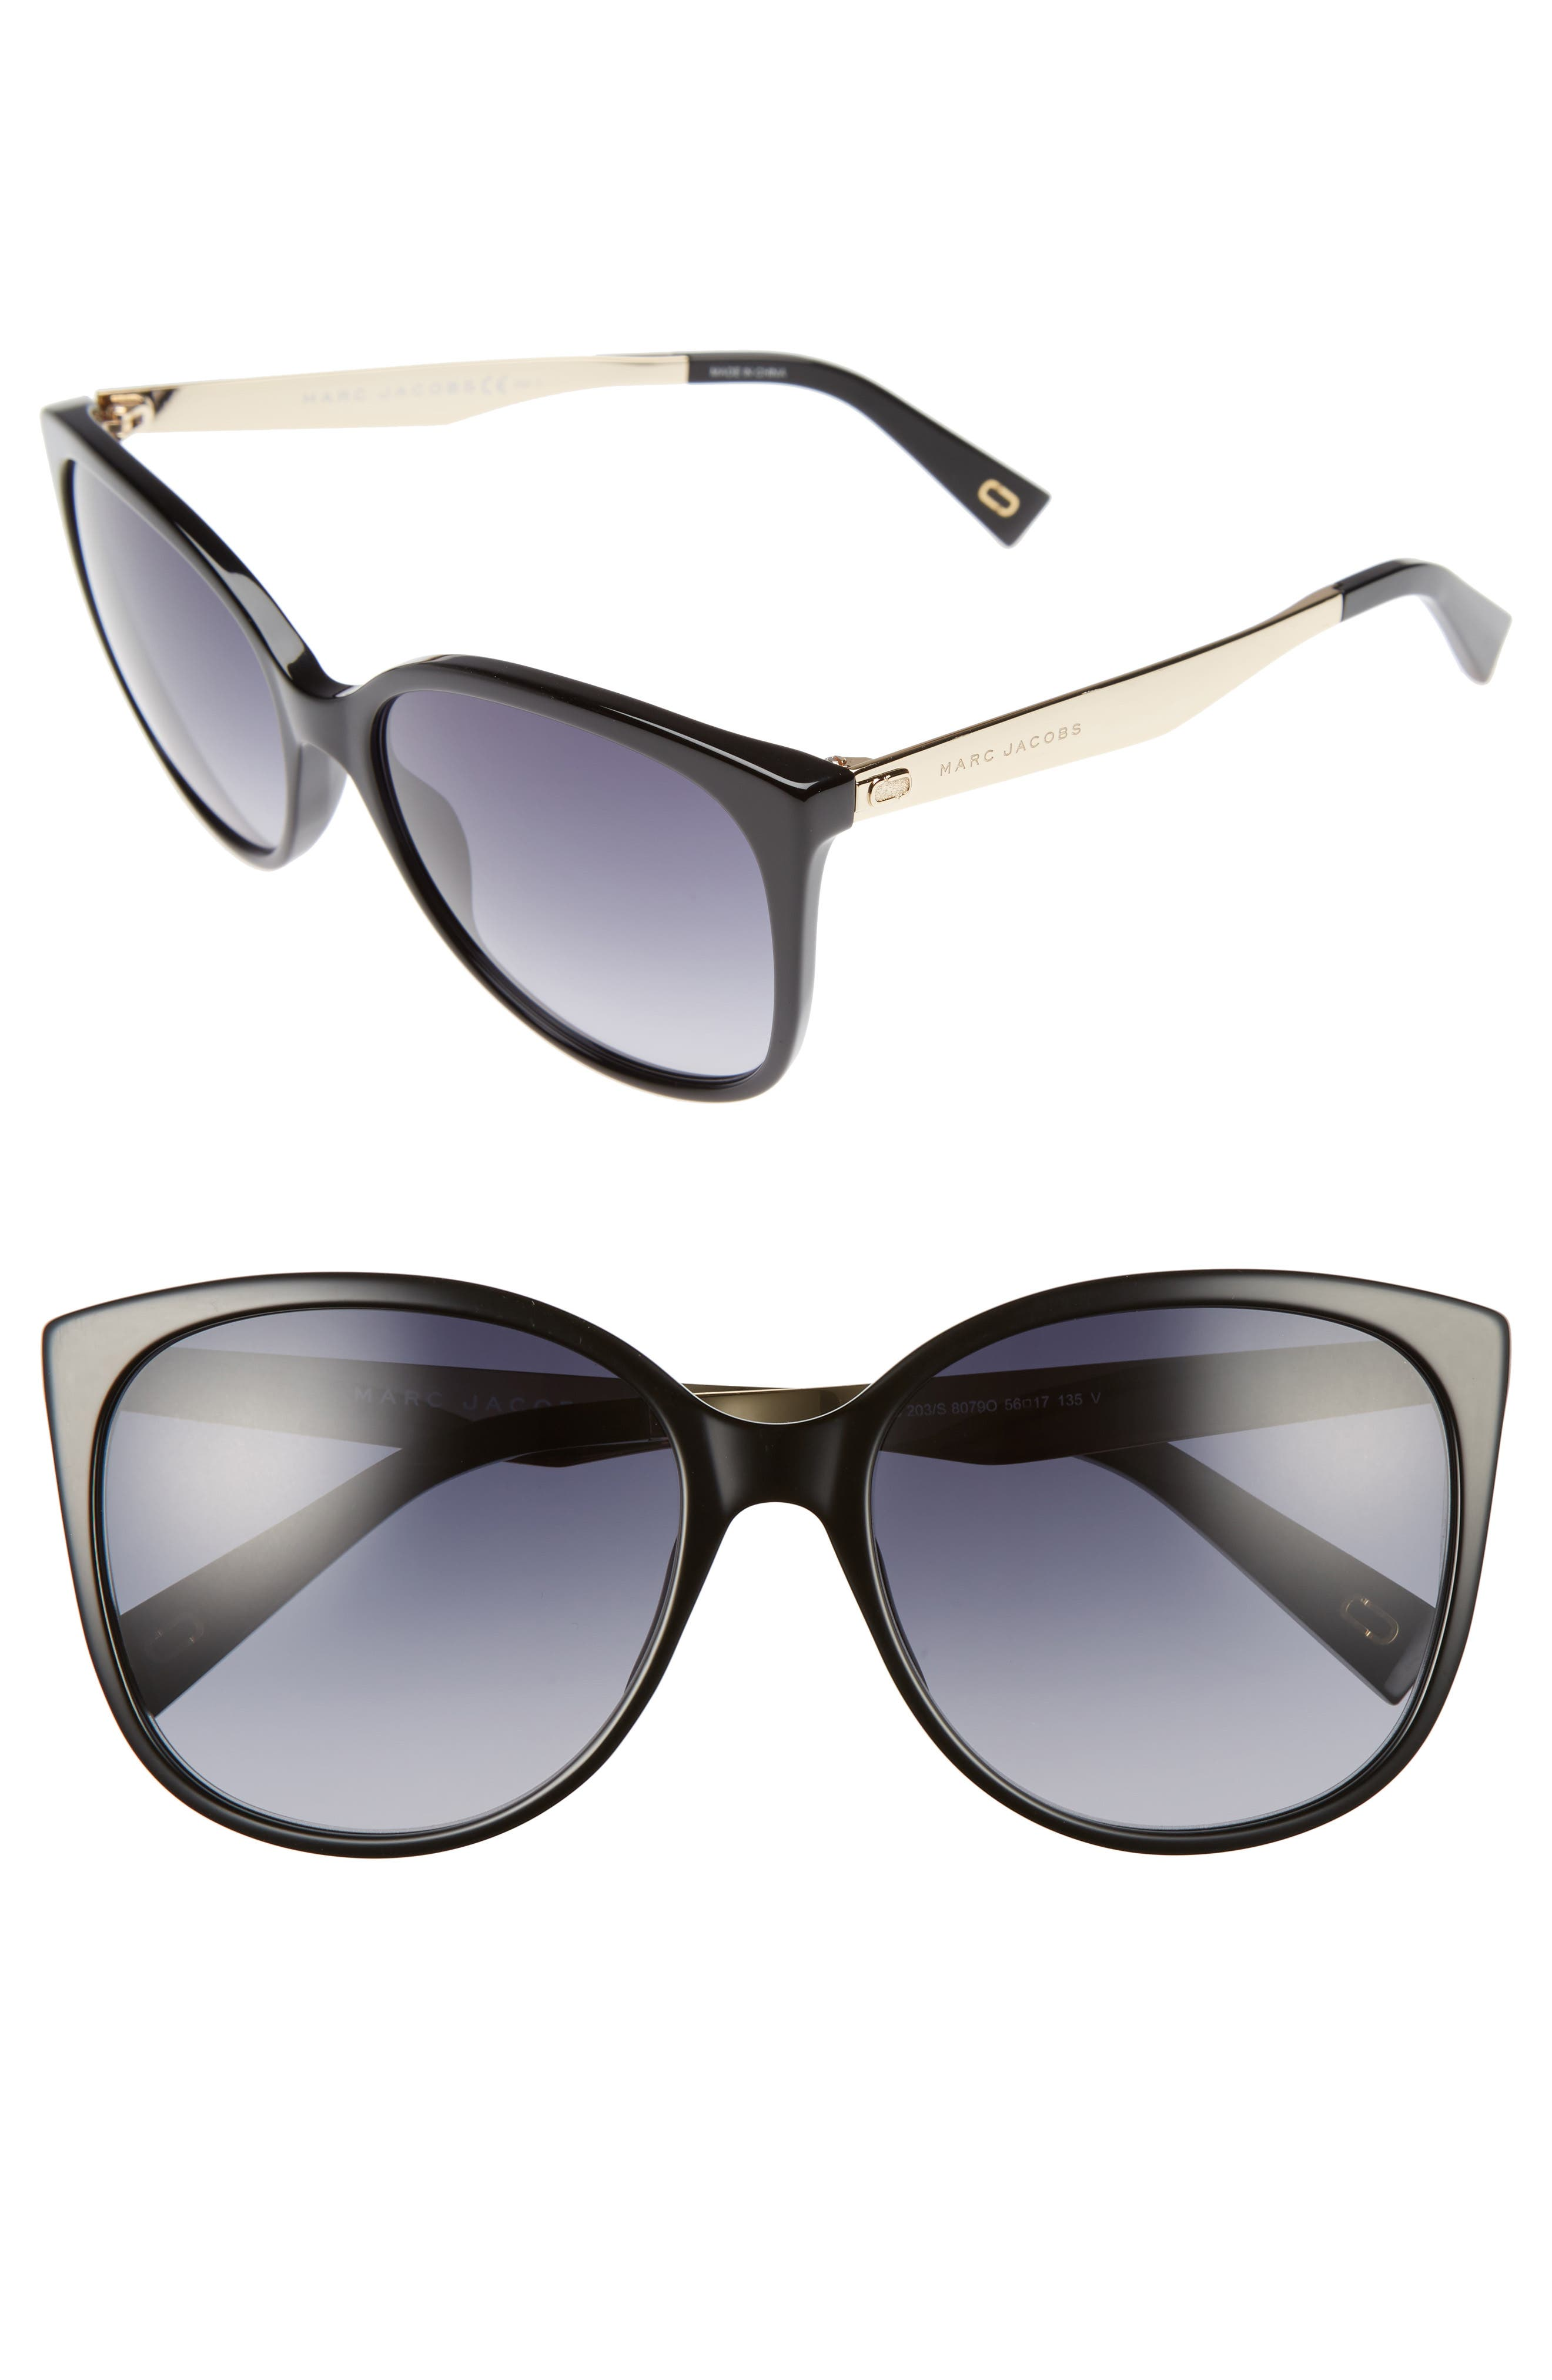 Main Image - MARC JACOBS 56mm Gradient Lens Butterfly Sunglasses